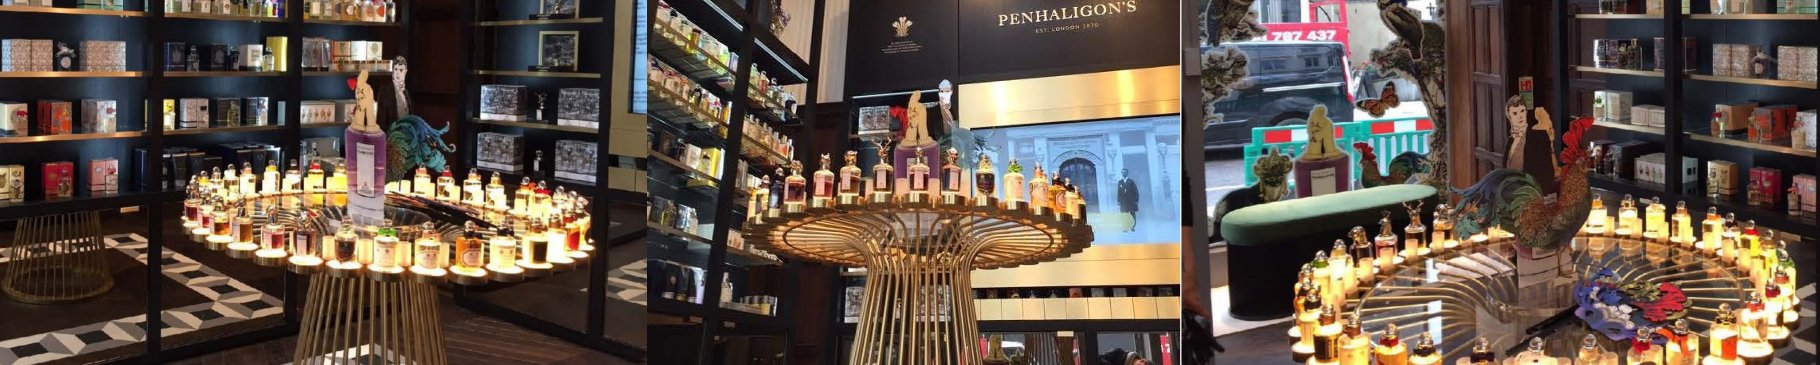 Penhaligon's Mayfair Store